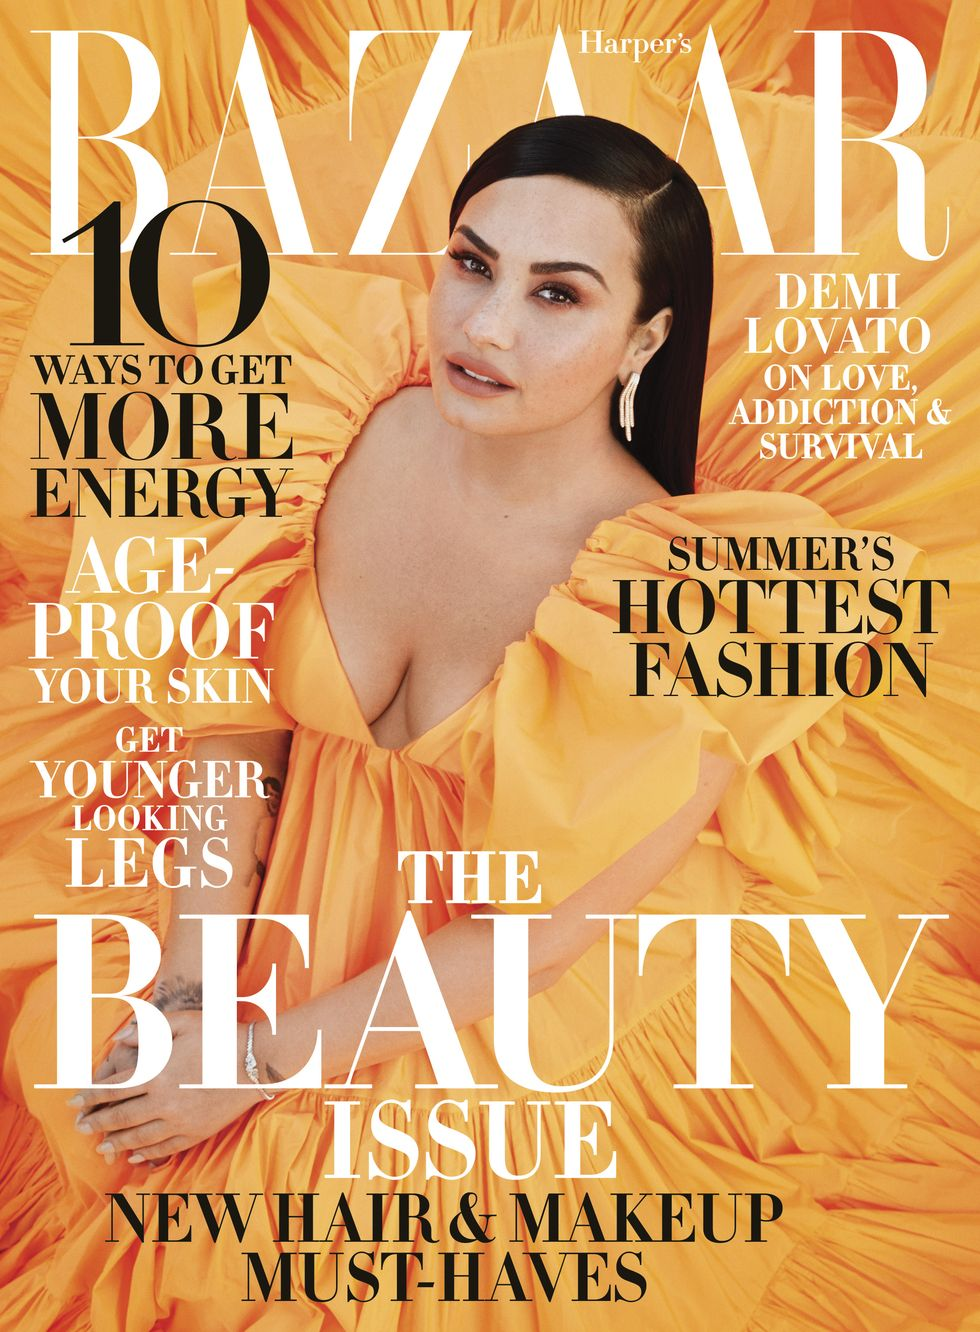 demi-lovato-in-valentino-gown-covers-harpers-bazaar-may-issue